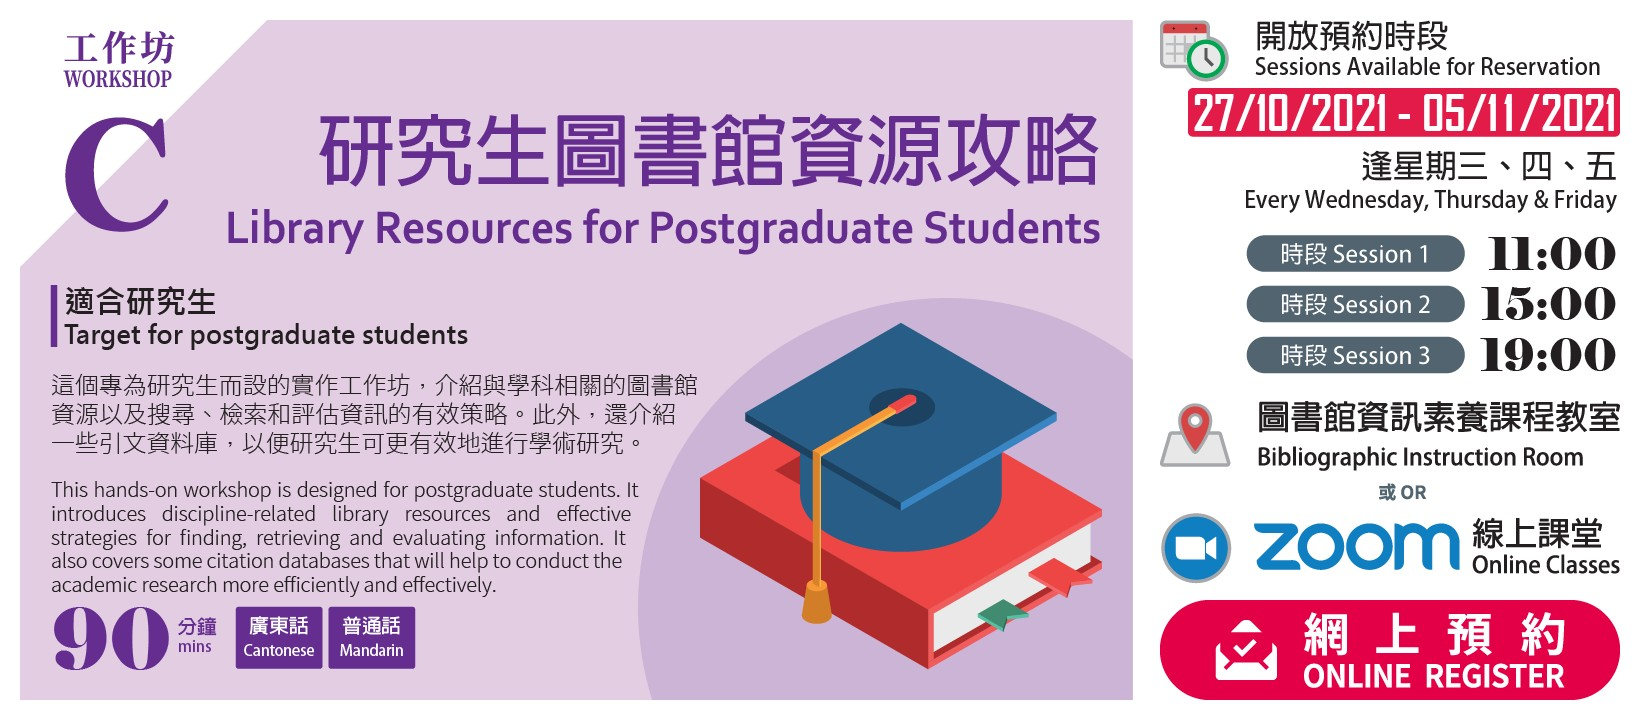 LIBRARY WORKSHOP C: Library Resources for Postgraduate Students